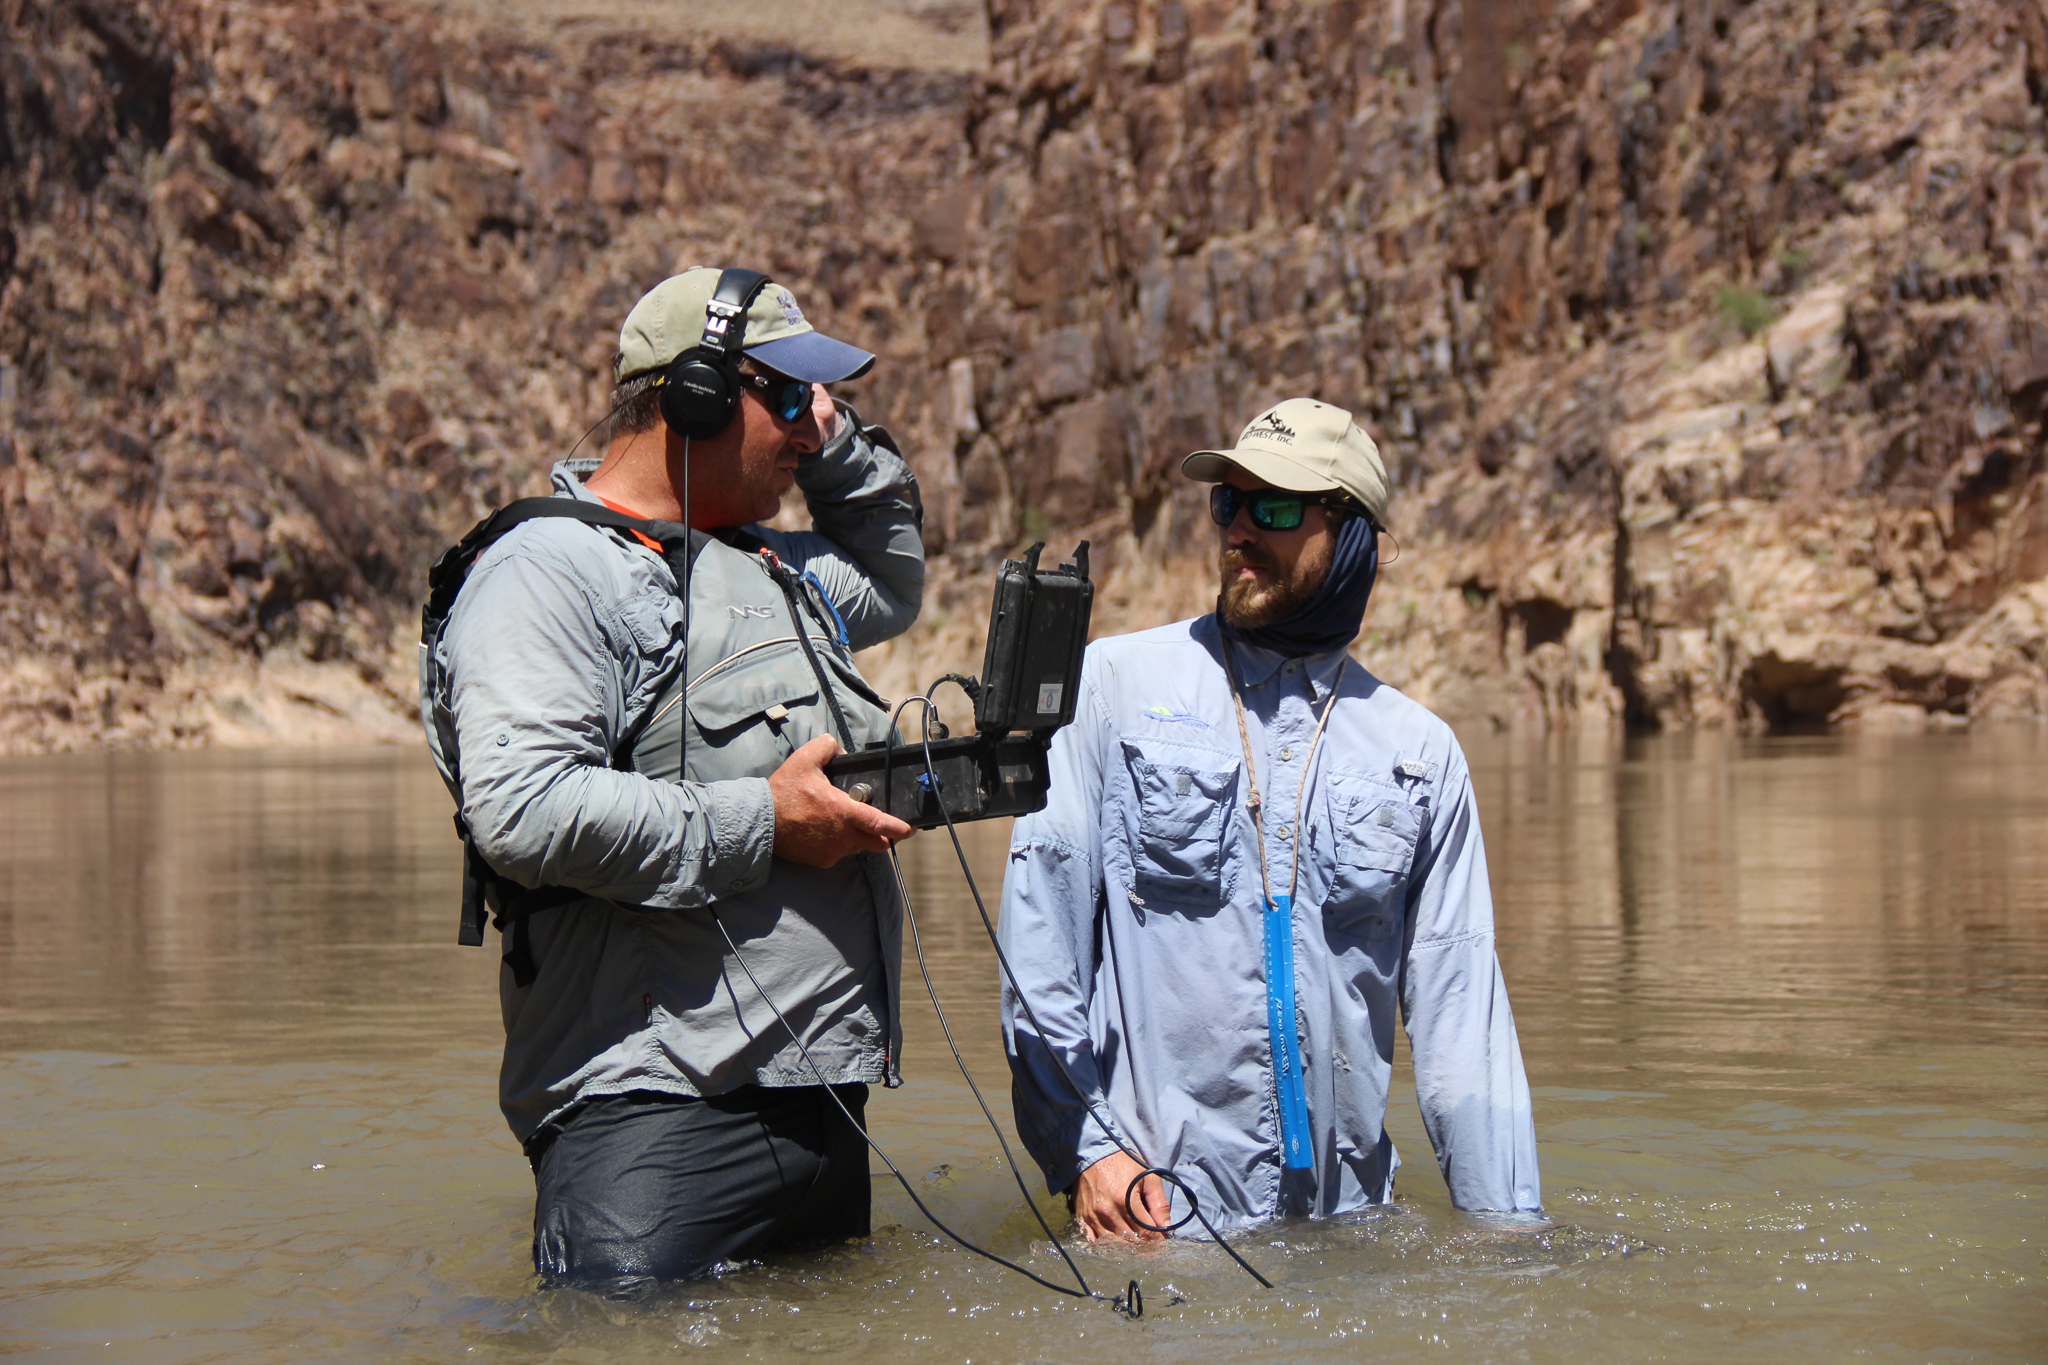 Brandon Albrecht and Mike Edwards use a hydrophone to listen for the pings of radio-tagged razorback suckers. In 2012, biologists captured an adult razorback in the Grand Canyon, fifty miles from Lake Mead, for the first time in decades.